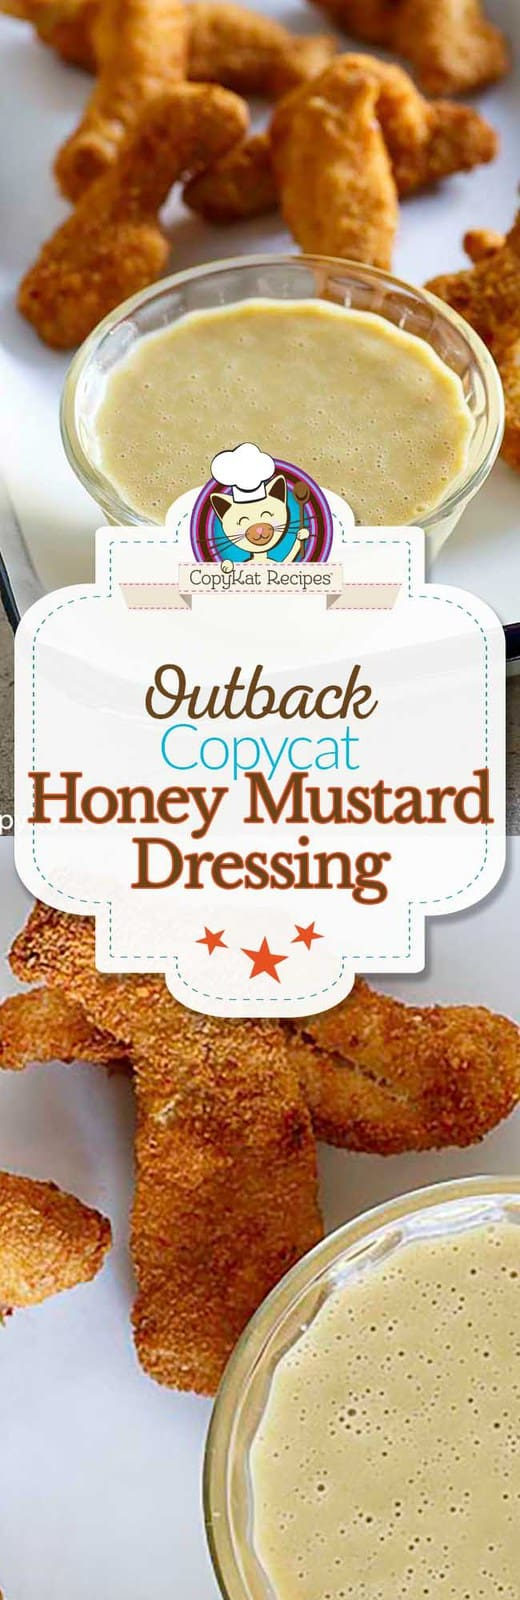 You can recreate the Outback Steakhouse Honey Mustard at home with this easy copycat recipe.  This recipe is perfect sauce for chicken tenders or a salad.  #copycat #copycatrecipe #honeymustard #outback #outbacksteakhouse